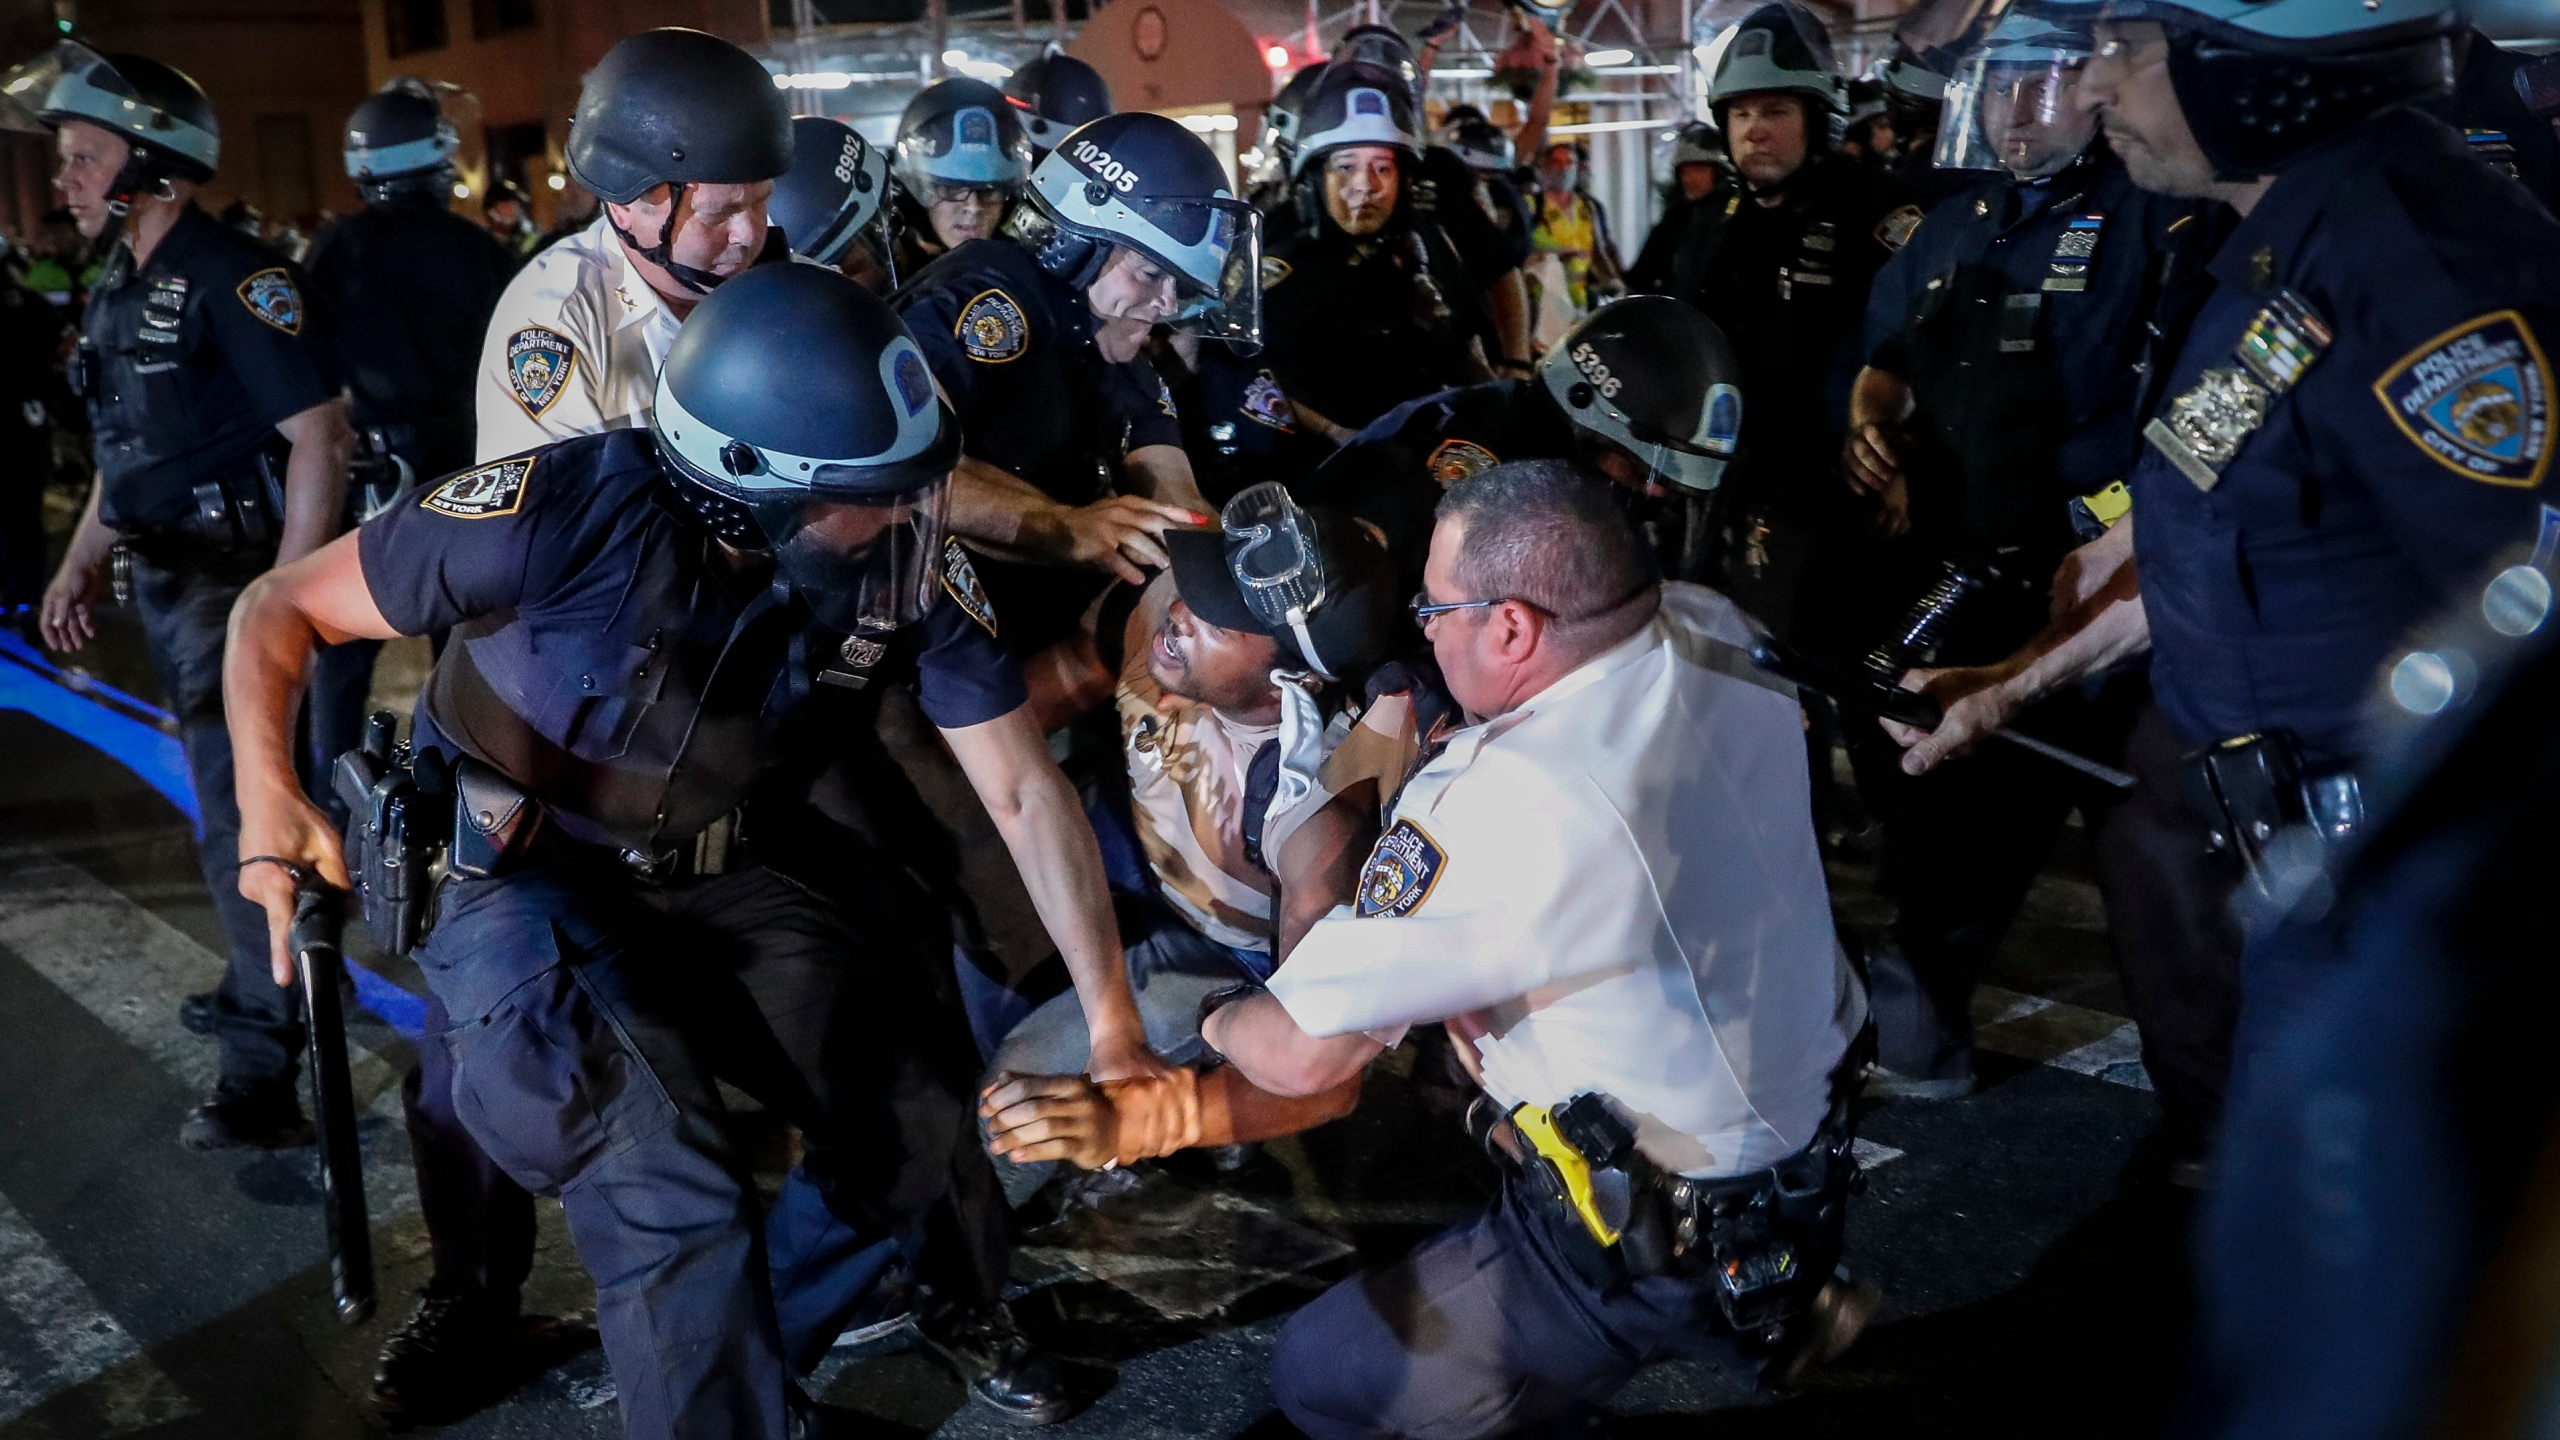 nyc protest arrest